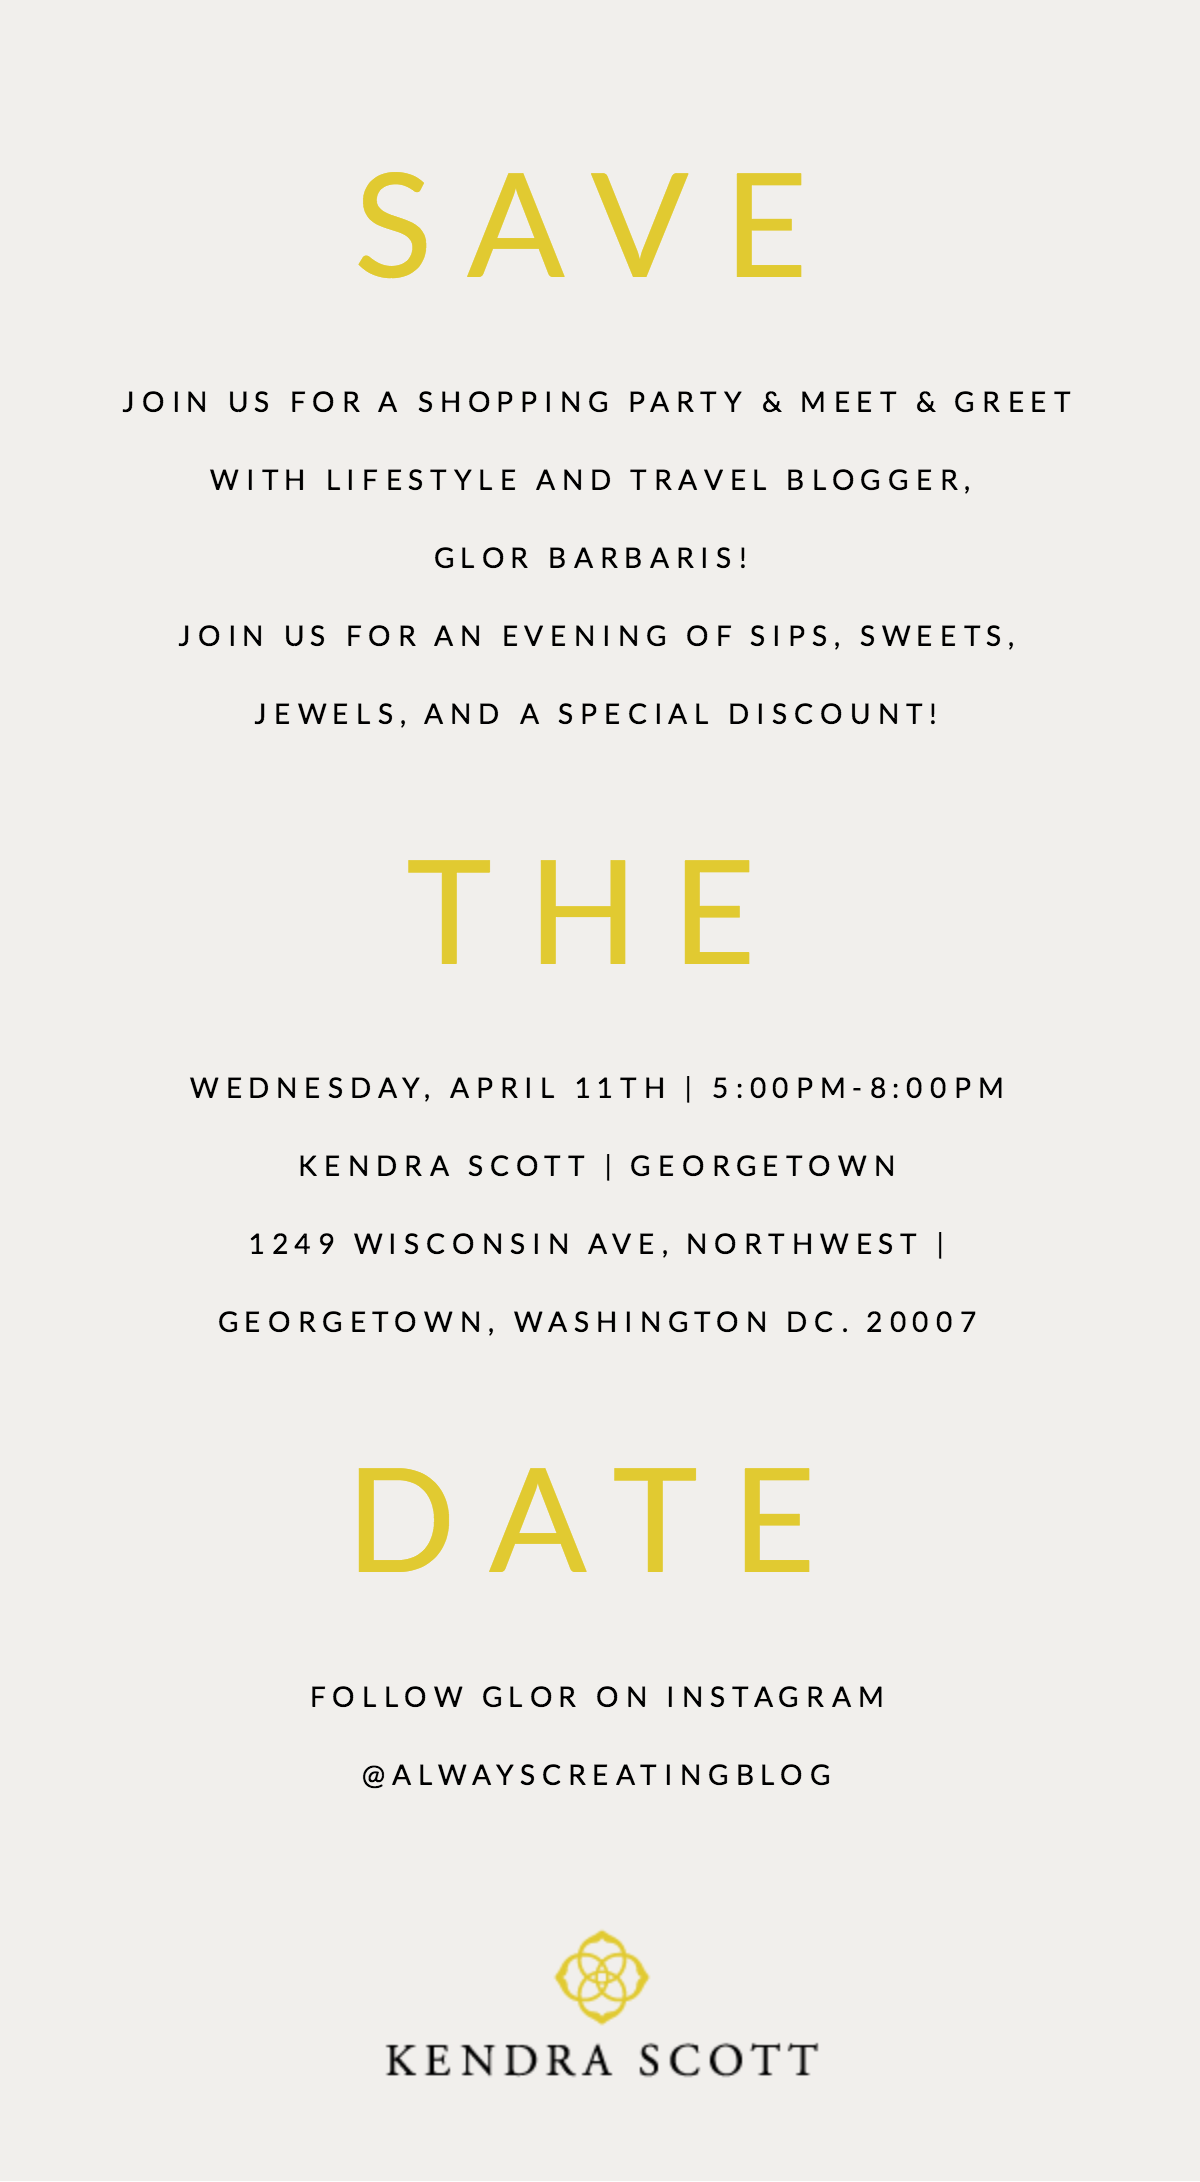 Save The Date - Follow Glor on Instagram